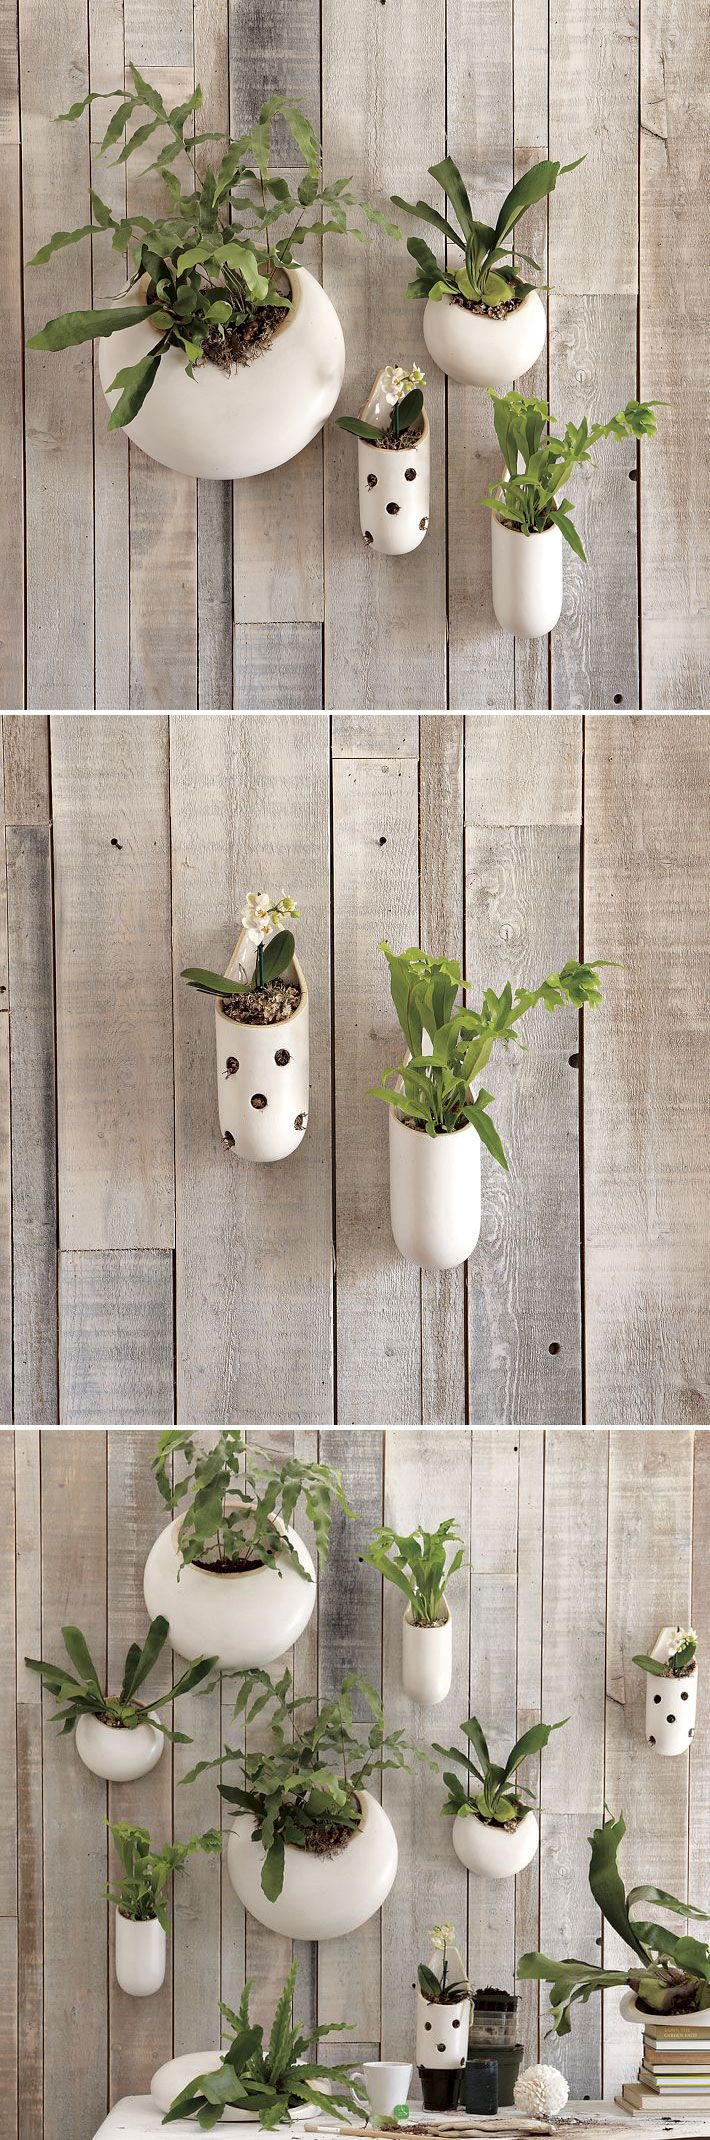 """Shane Powers Ceramic Wall Planters :: $19 - $69 